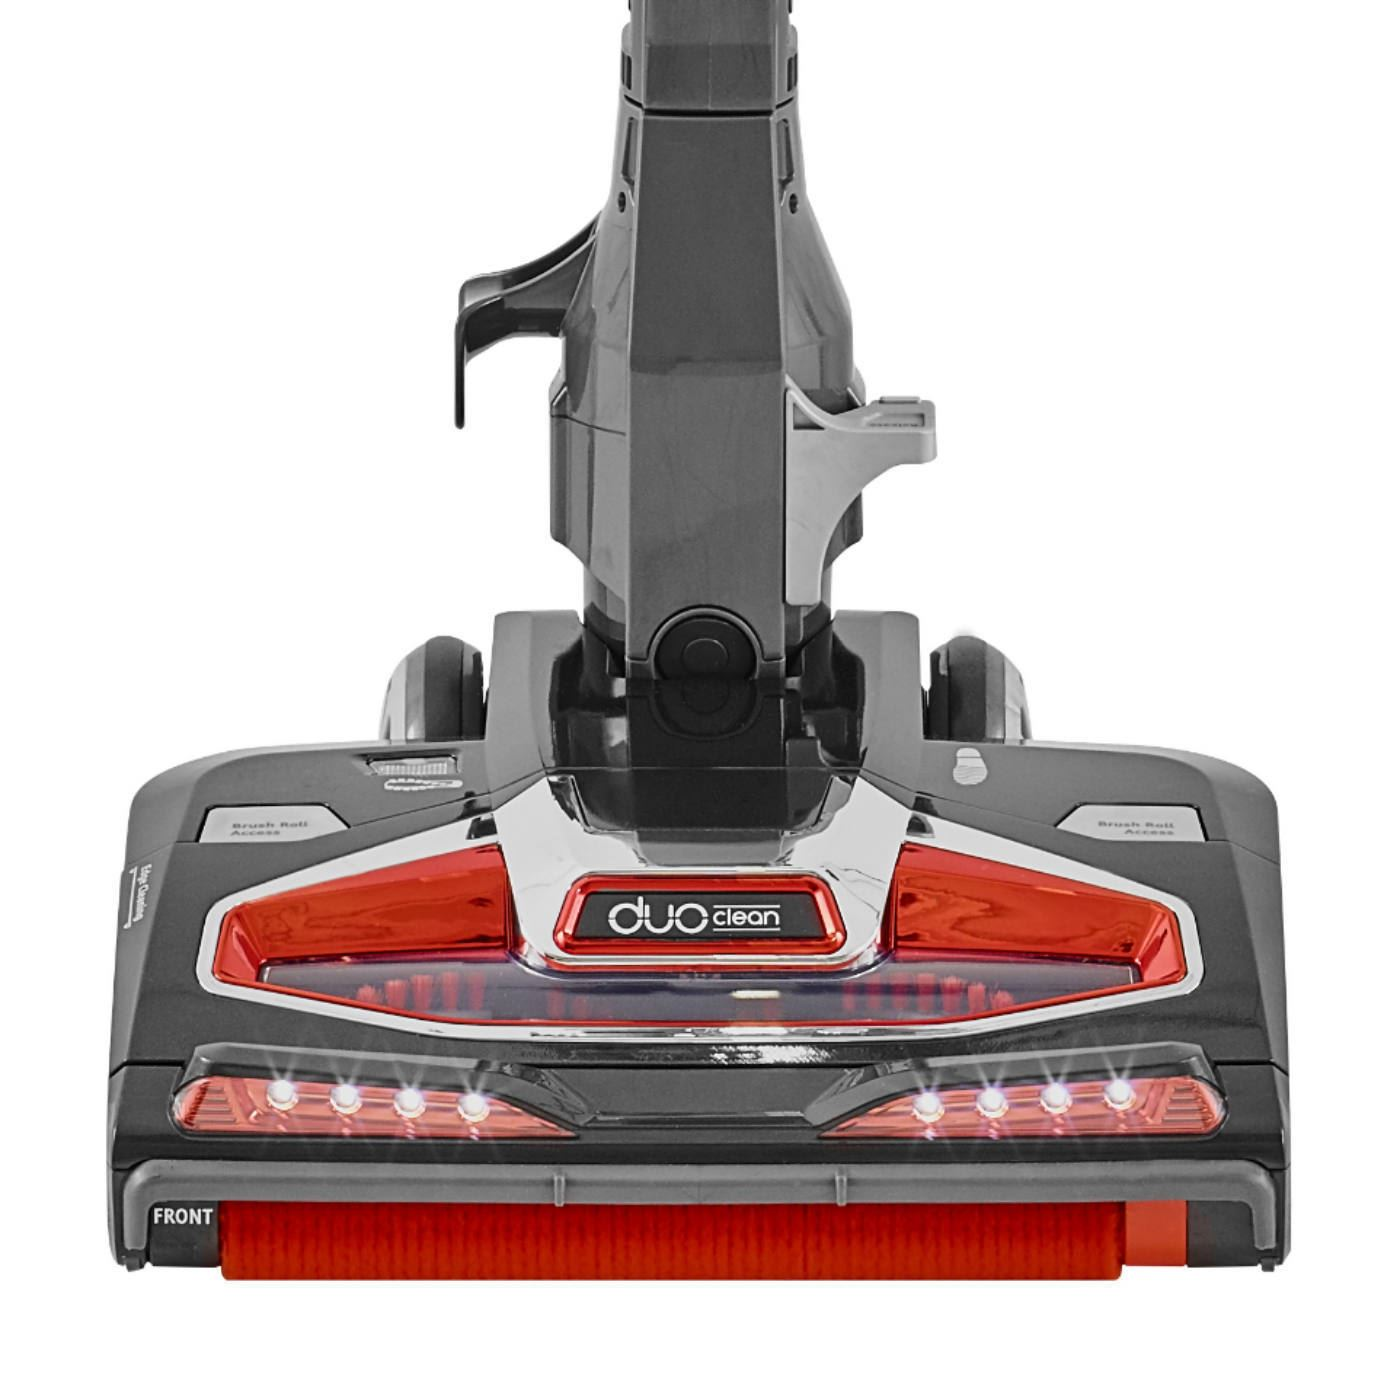 shark rocket stick vacuum cleaner with duoclean technology hv380uk